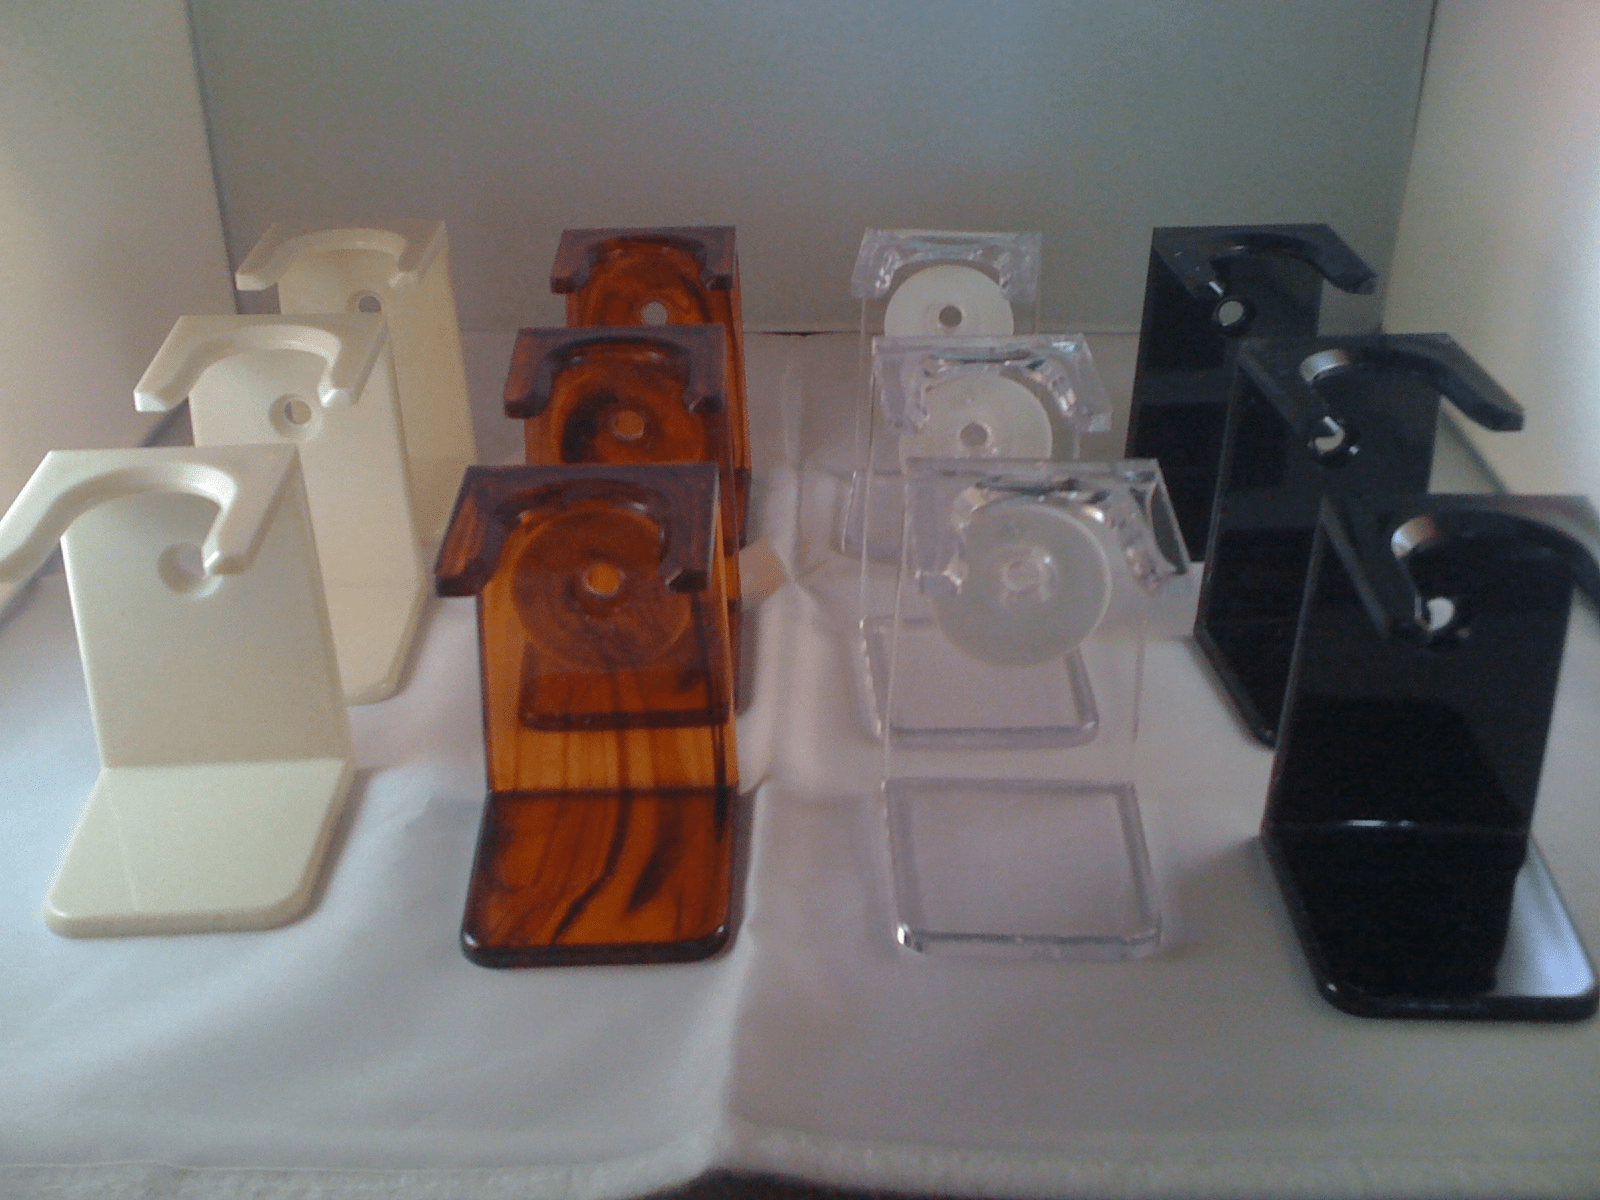 MIRRORED Finish Acrylic Brush Stands -  From Old Progress Vulfix